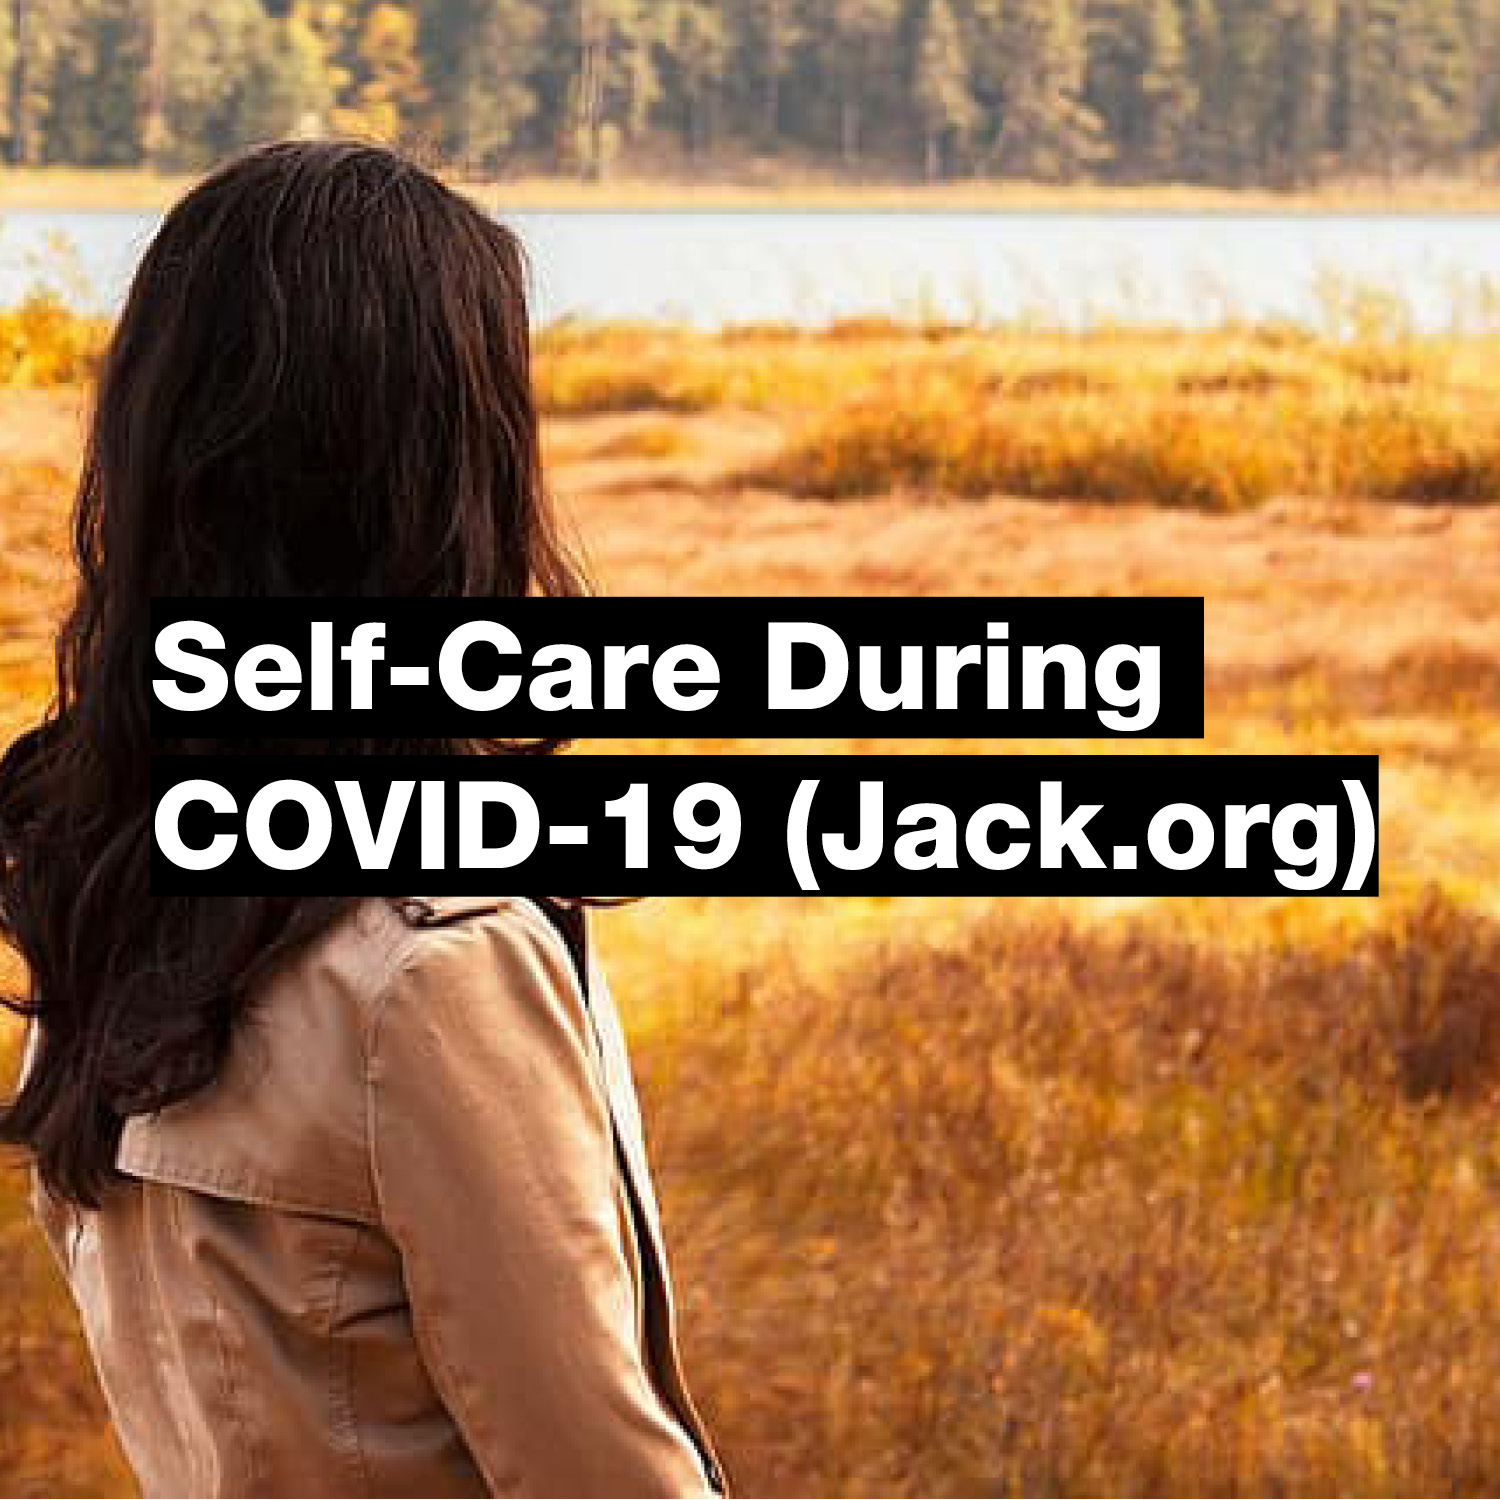 Self-Care During COVID-19 (Jack.org)